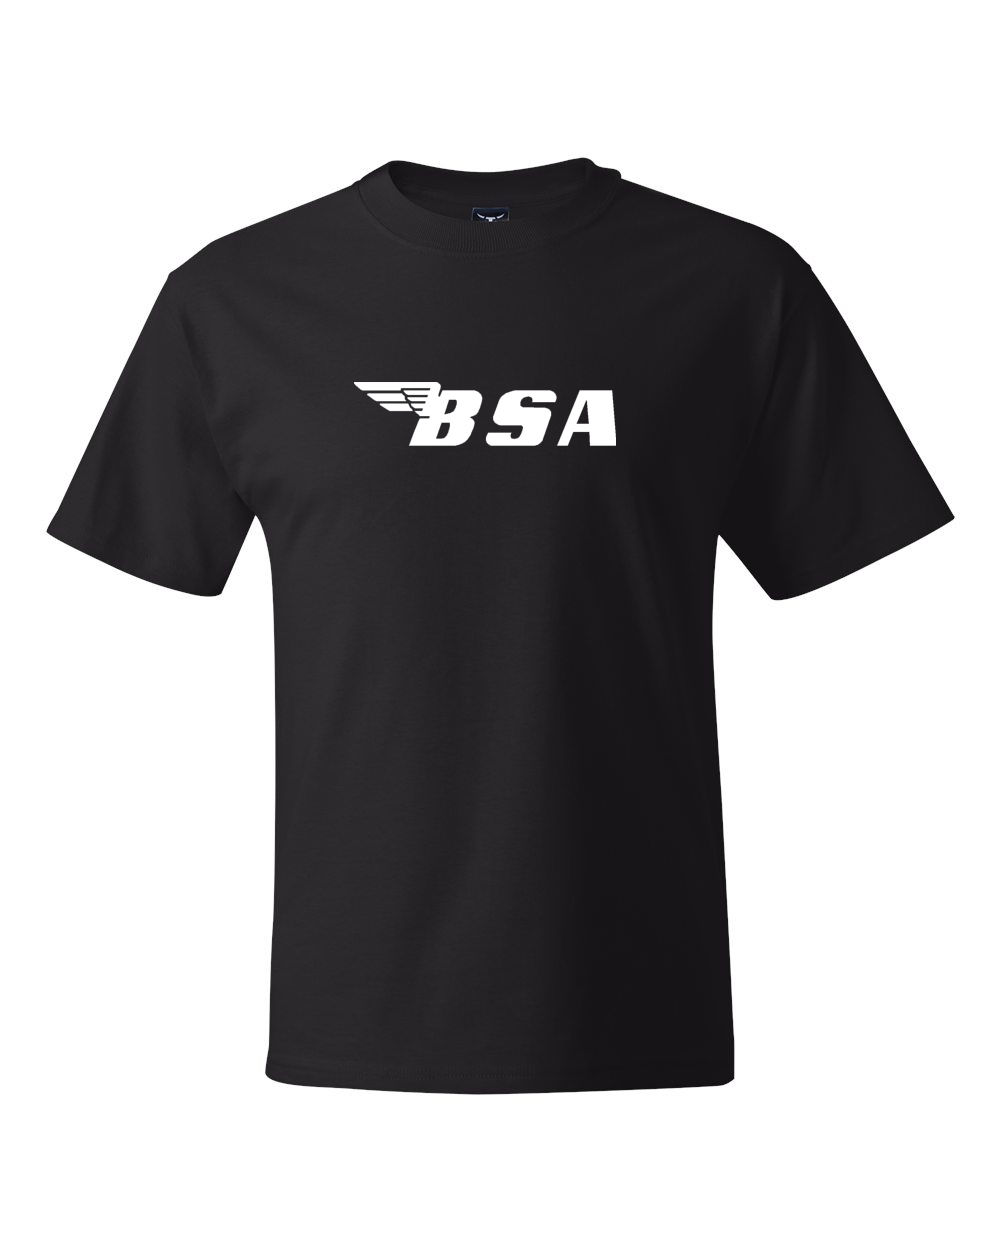 <font><b>Bsa</b></font> Logo Motorcycles Vintages <font><b>Shirts</b></font> 2019 New Fashion Brand Clothing Print Round Neck Man 3D Print T <font><b>Shirt</b></font> image